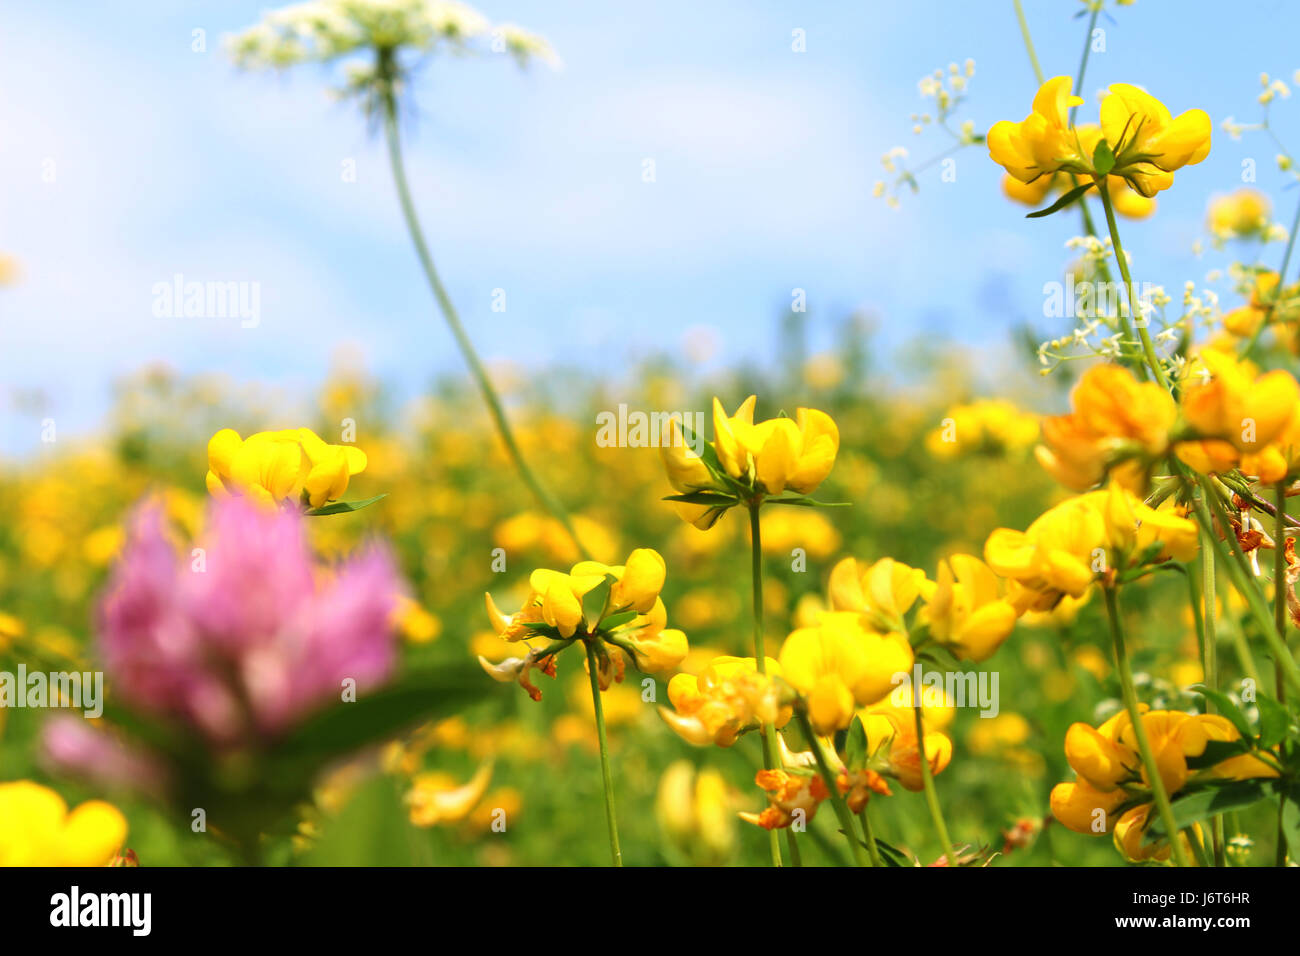 Yellow Clover Flower Stock Photos Yellow Clover Flower Stock